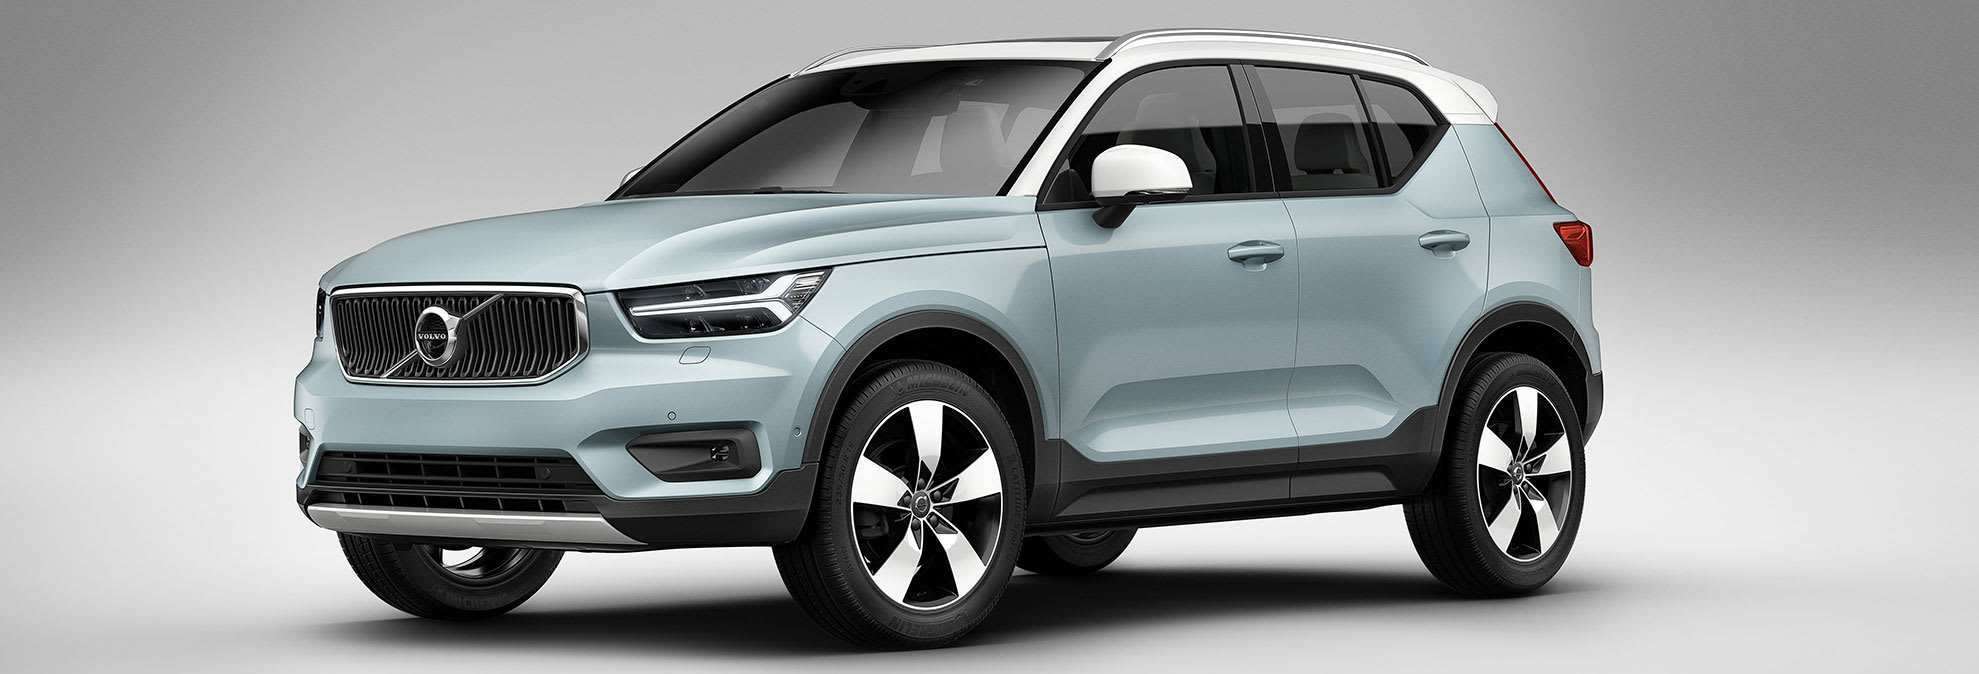 31 All New Volvo In 2019 Redesign with Volvo In 2019